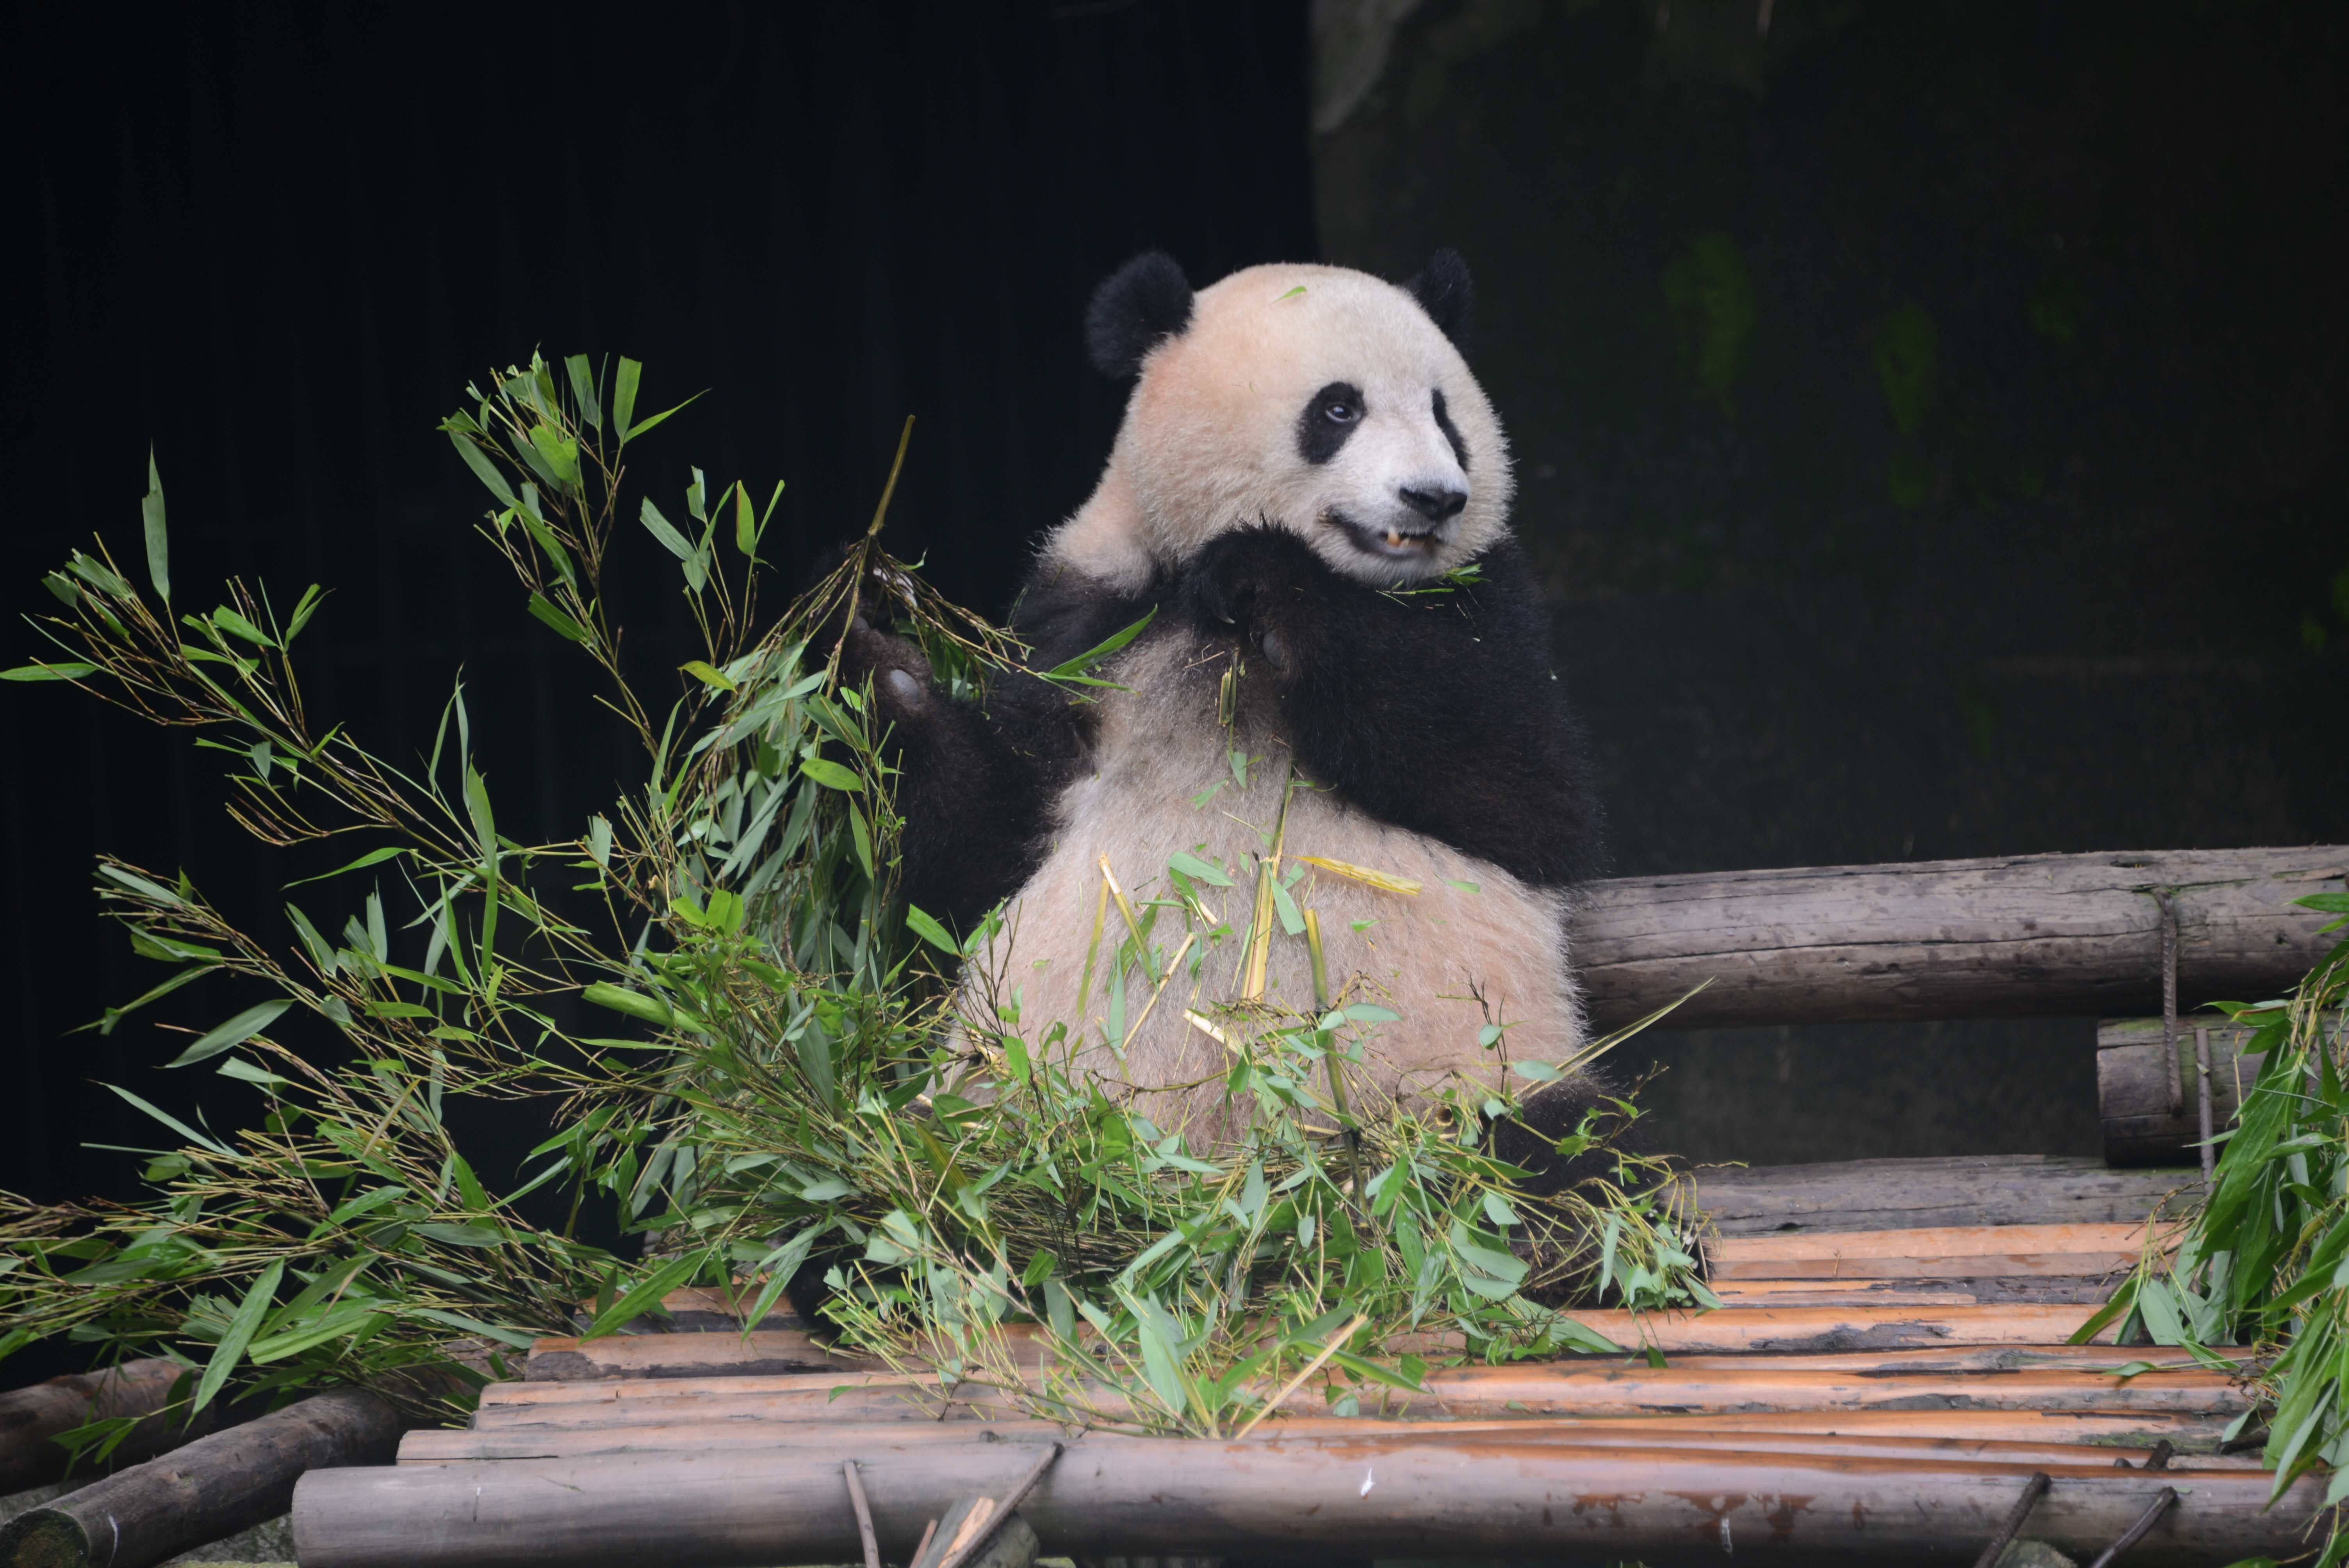 Despite seeing some of China's greatest historical treasures, students were delighted to see one of the country's greatest natural treasures in the pandas at the Chongqing zoo. (Photo credit: Curtis Chan)